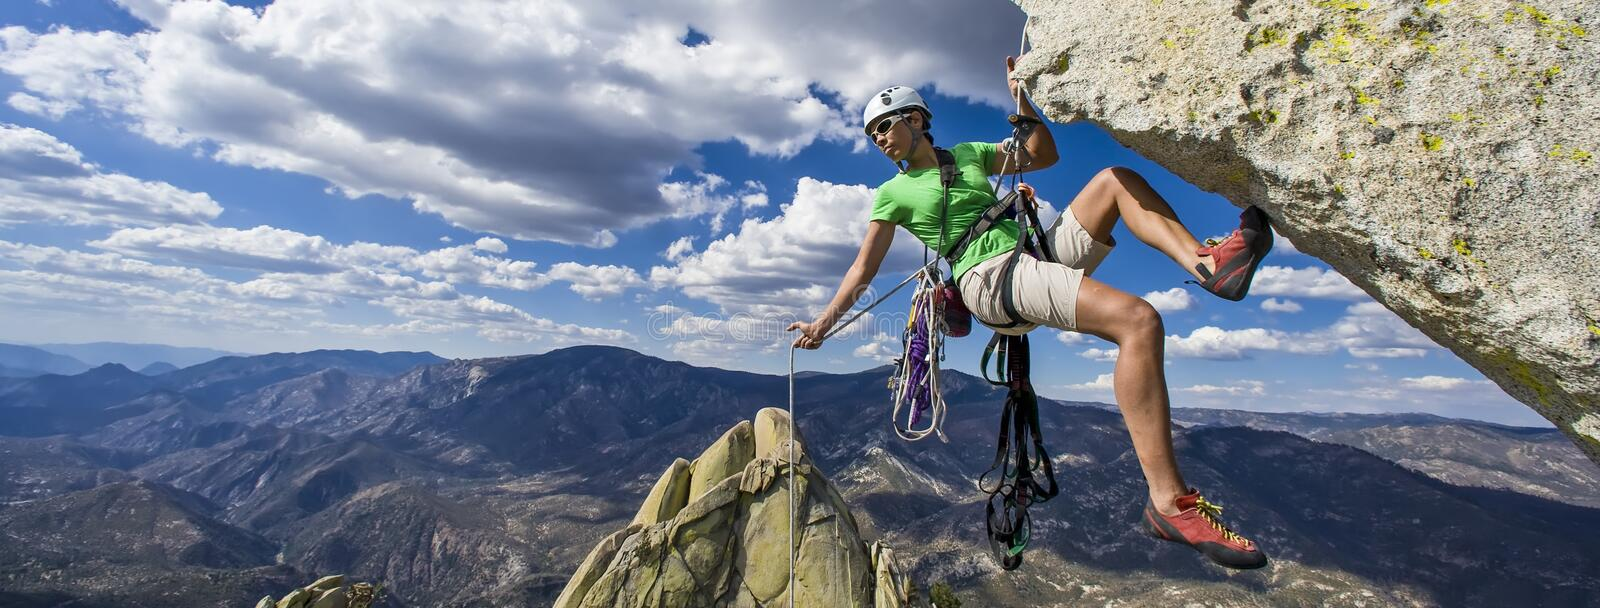 Climber rappels. royalty free stock image